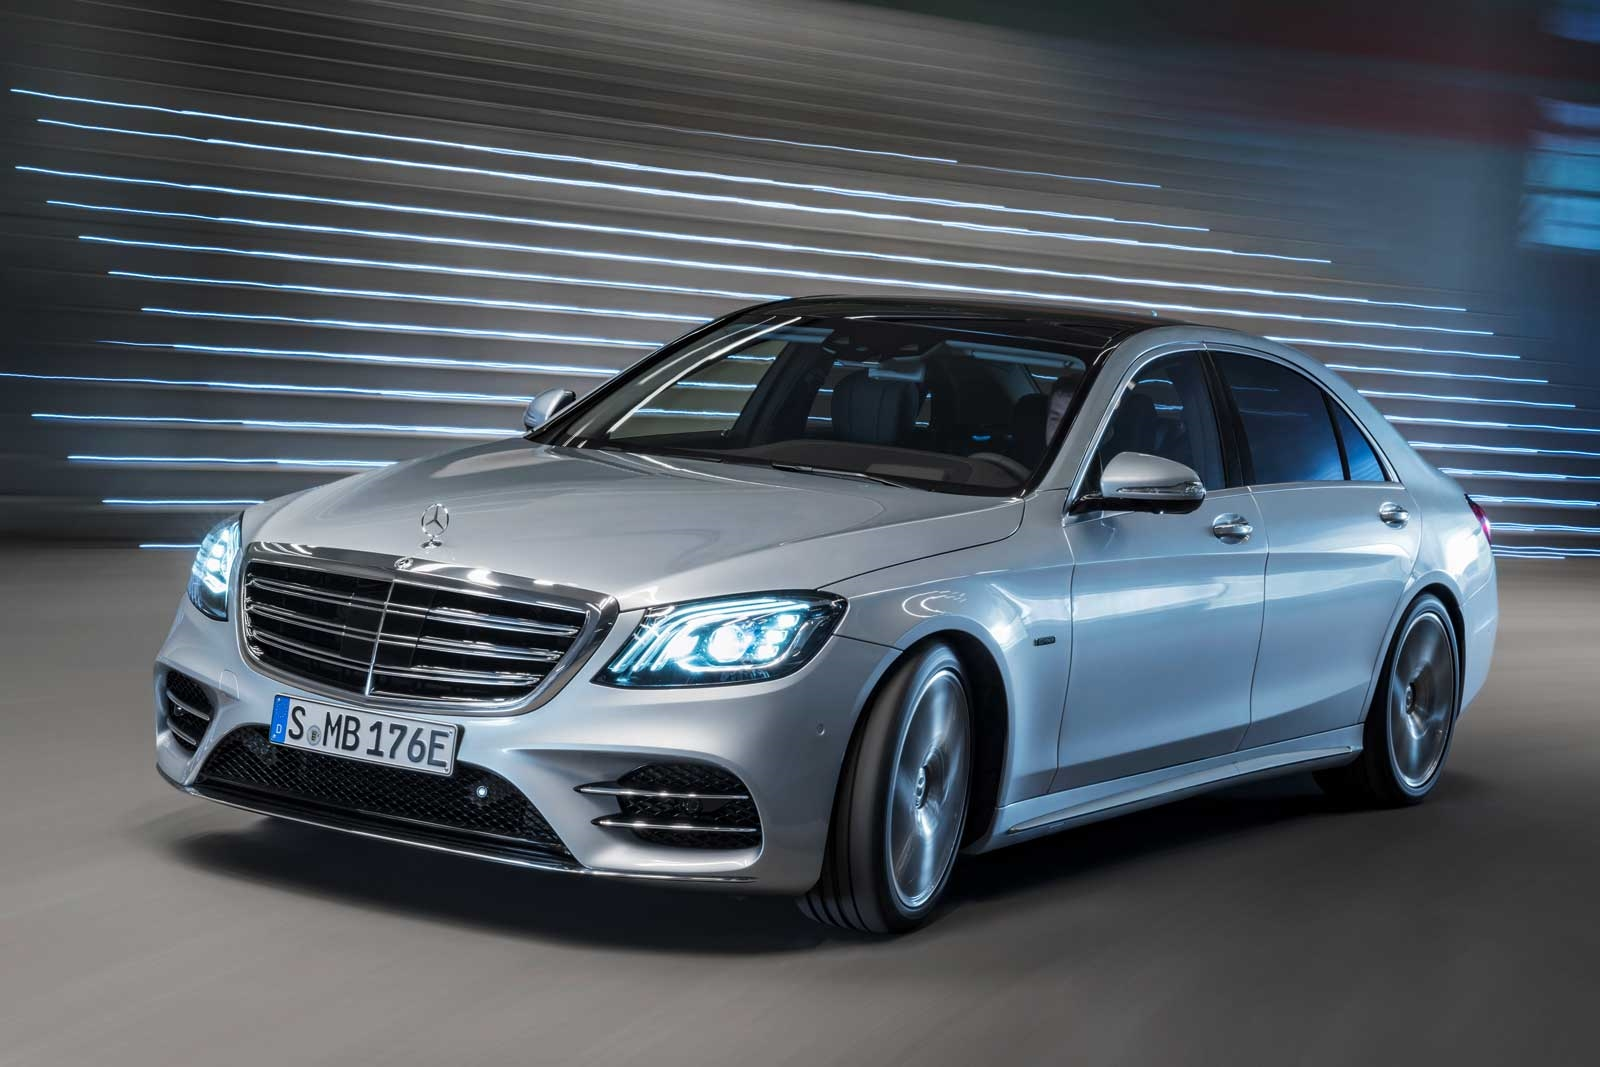 Mercedes pulls its plug-in hybrids to prepare for new models | DeviceDaily.com